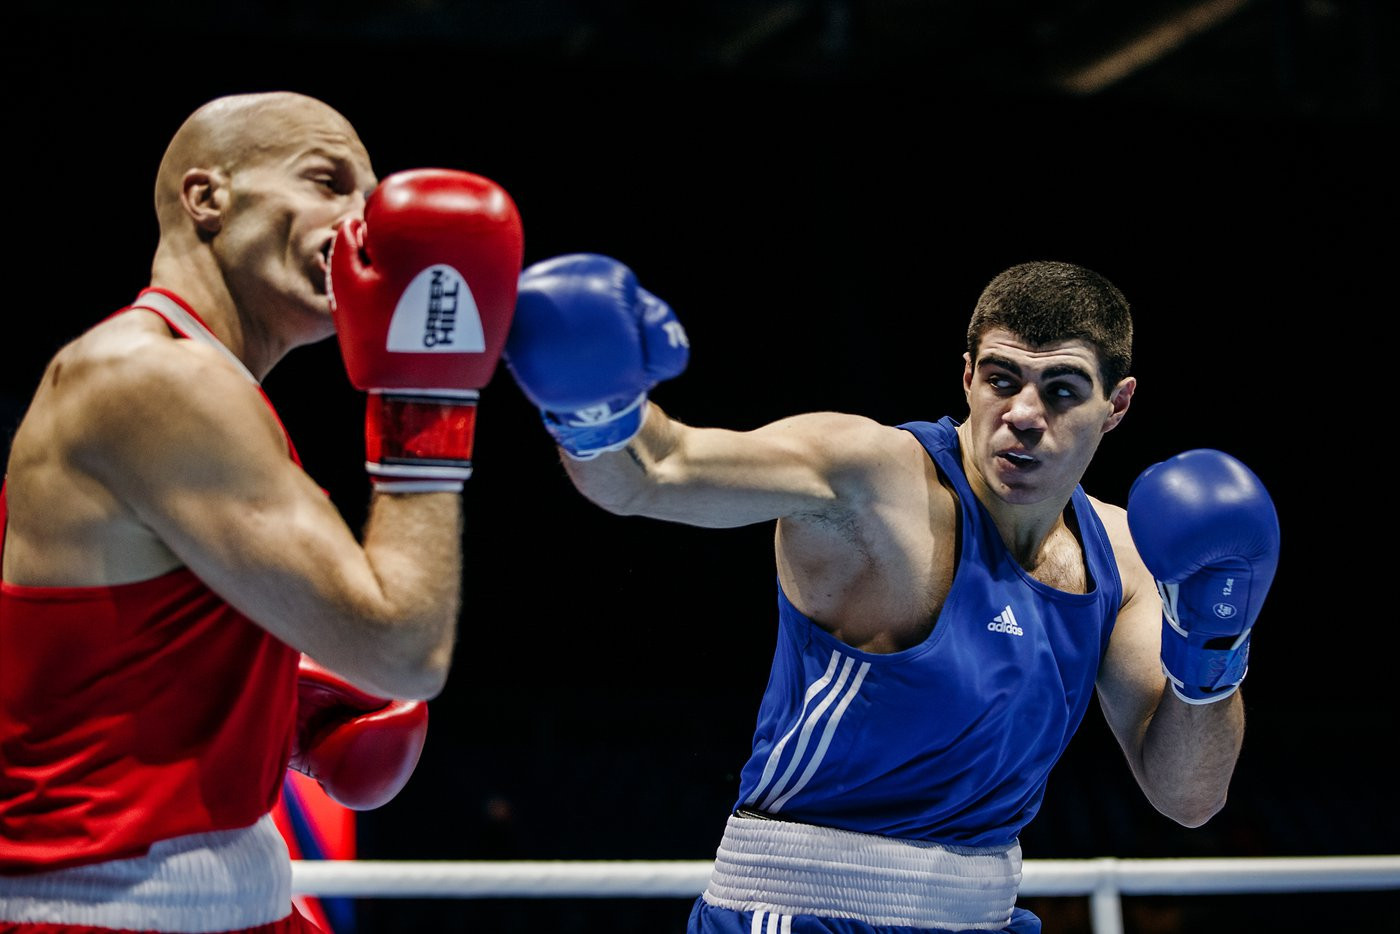 AIBA Men's World Championships 2019: Day 10 of competition